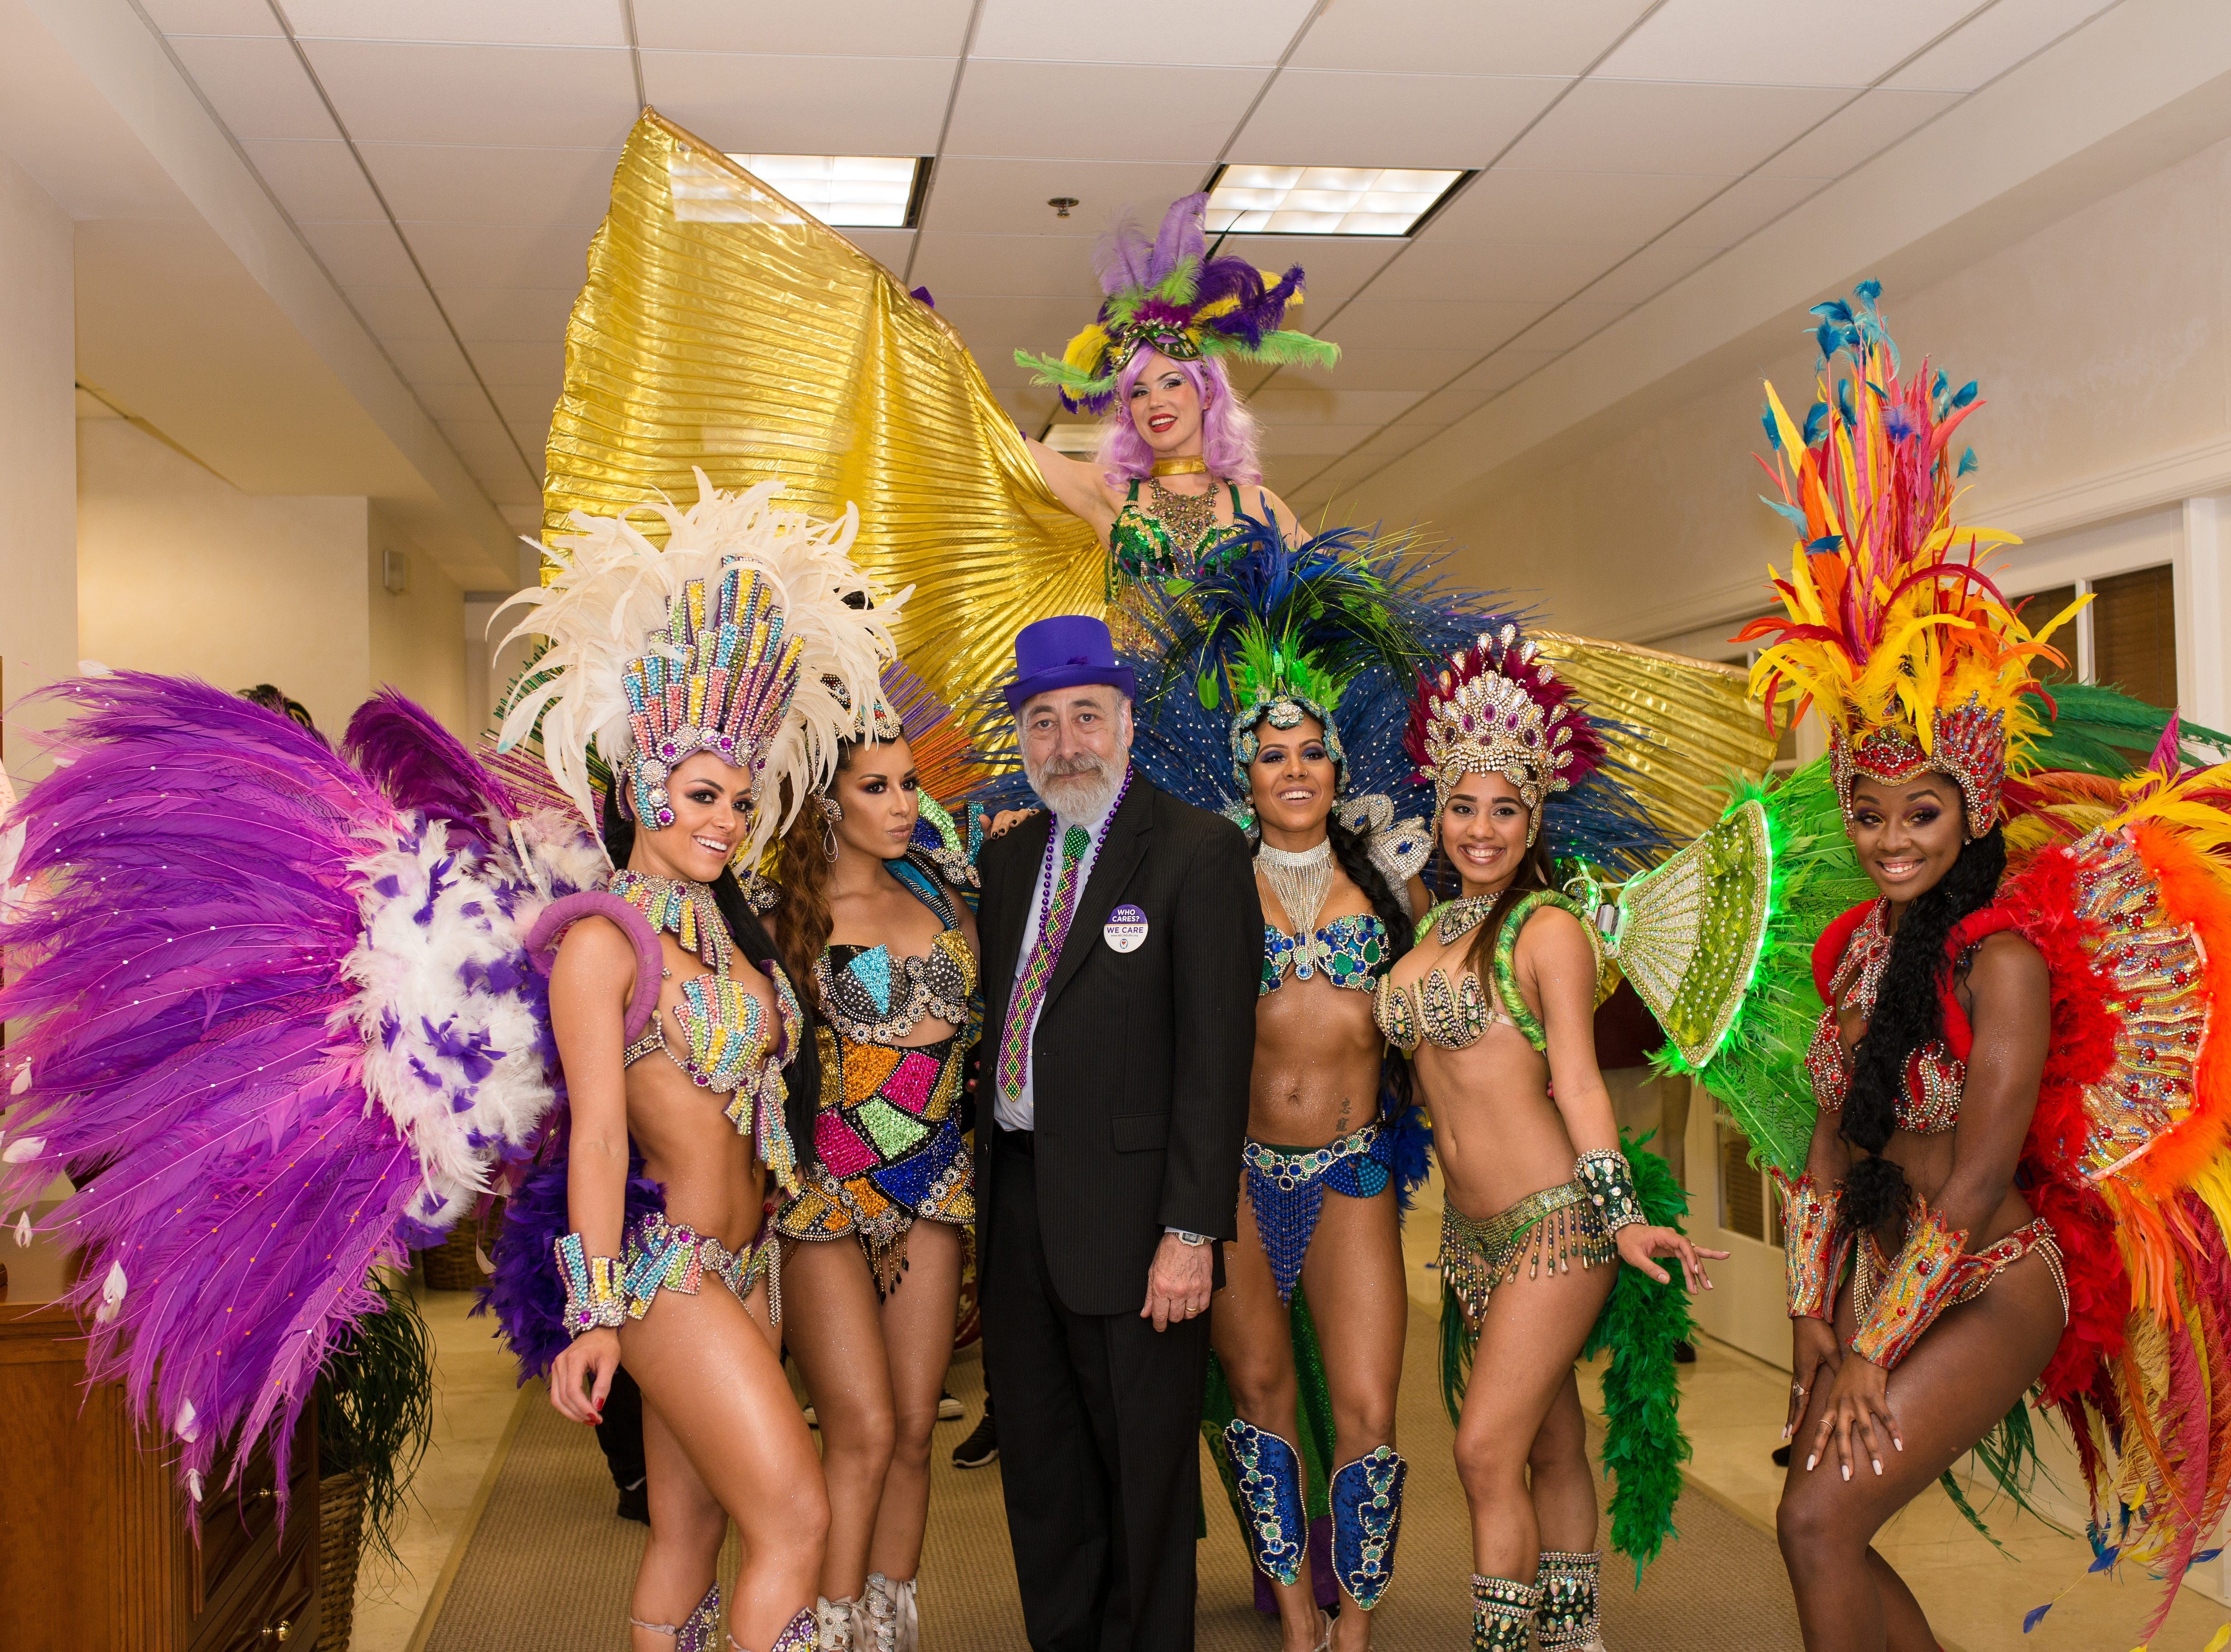 Dr. Dennis Saver, founder of the We Care Program, is surrounded by Phoebe's Samba Team prior to their performance at the Mardi Gras Celebration at Oak Harbor Club.